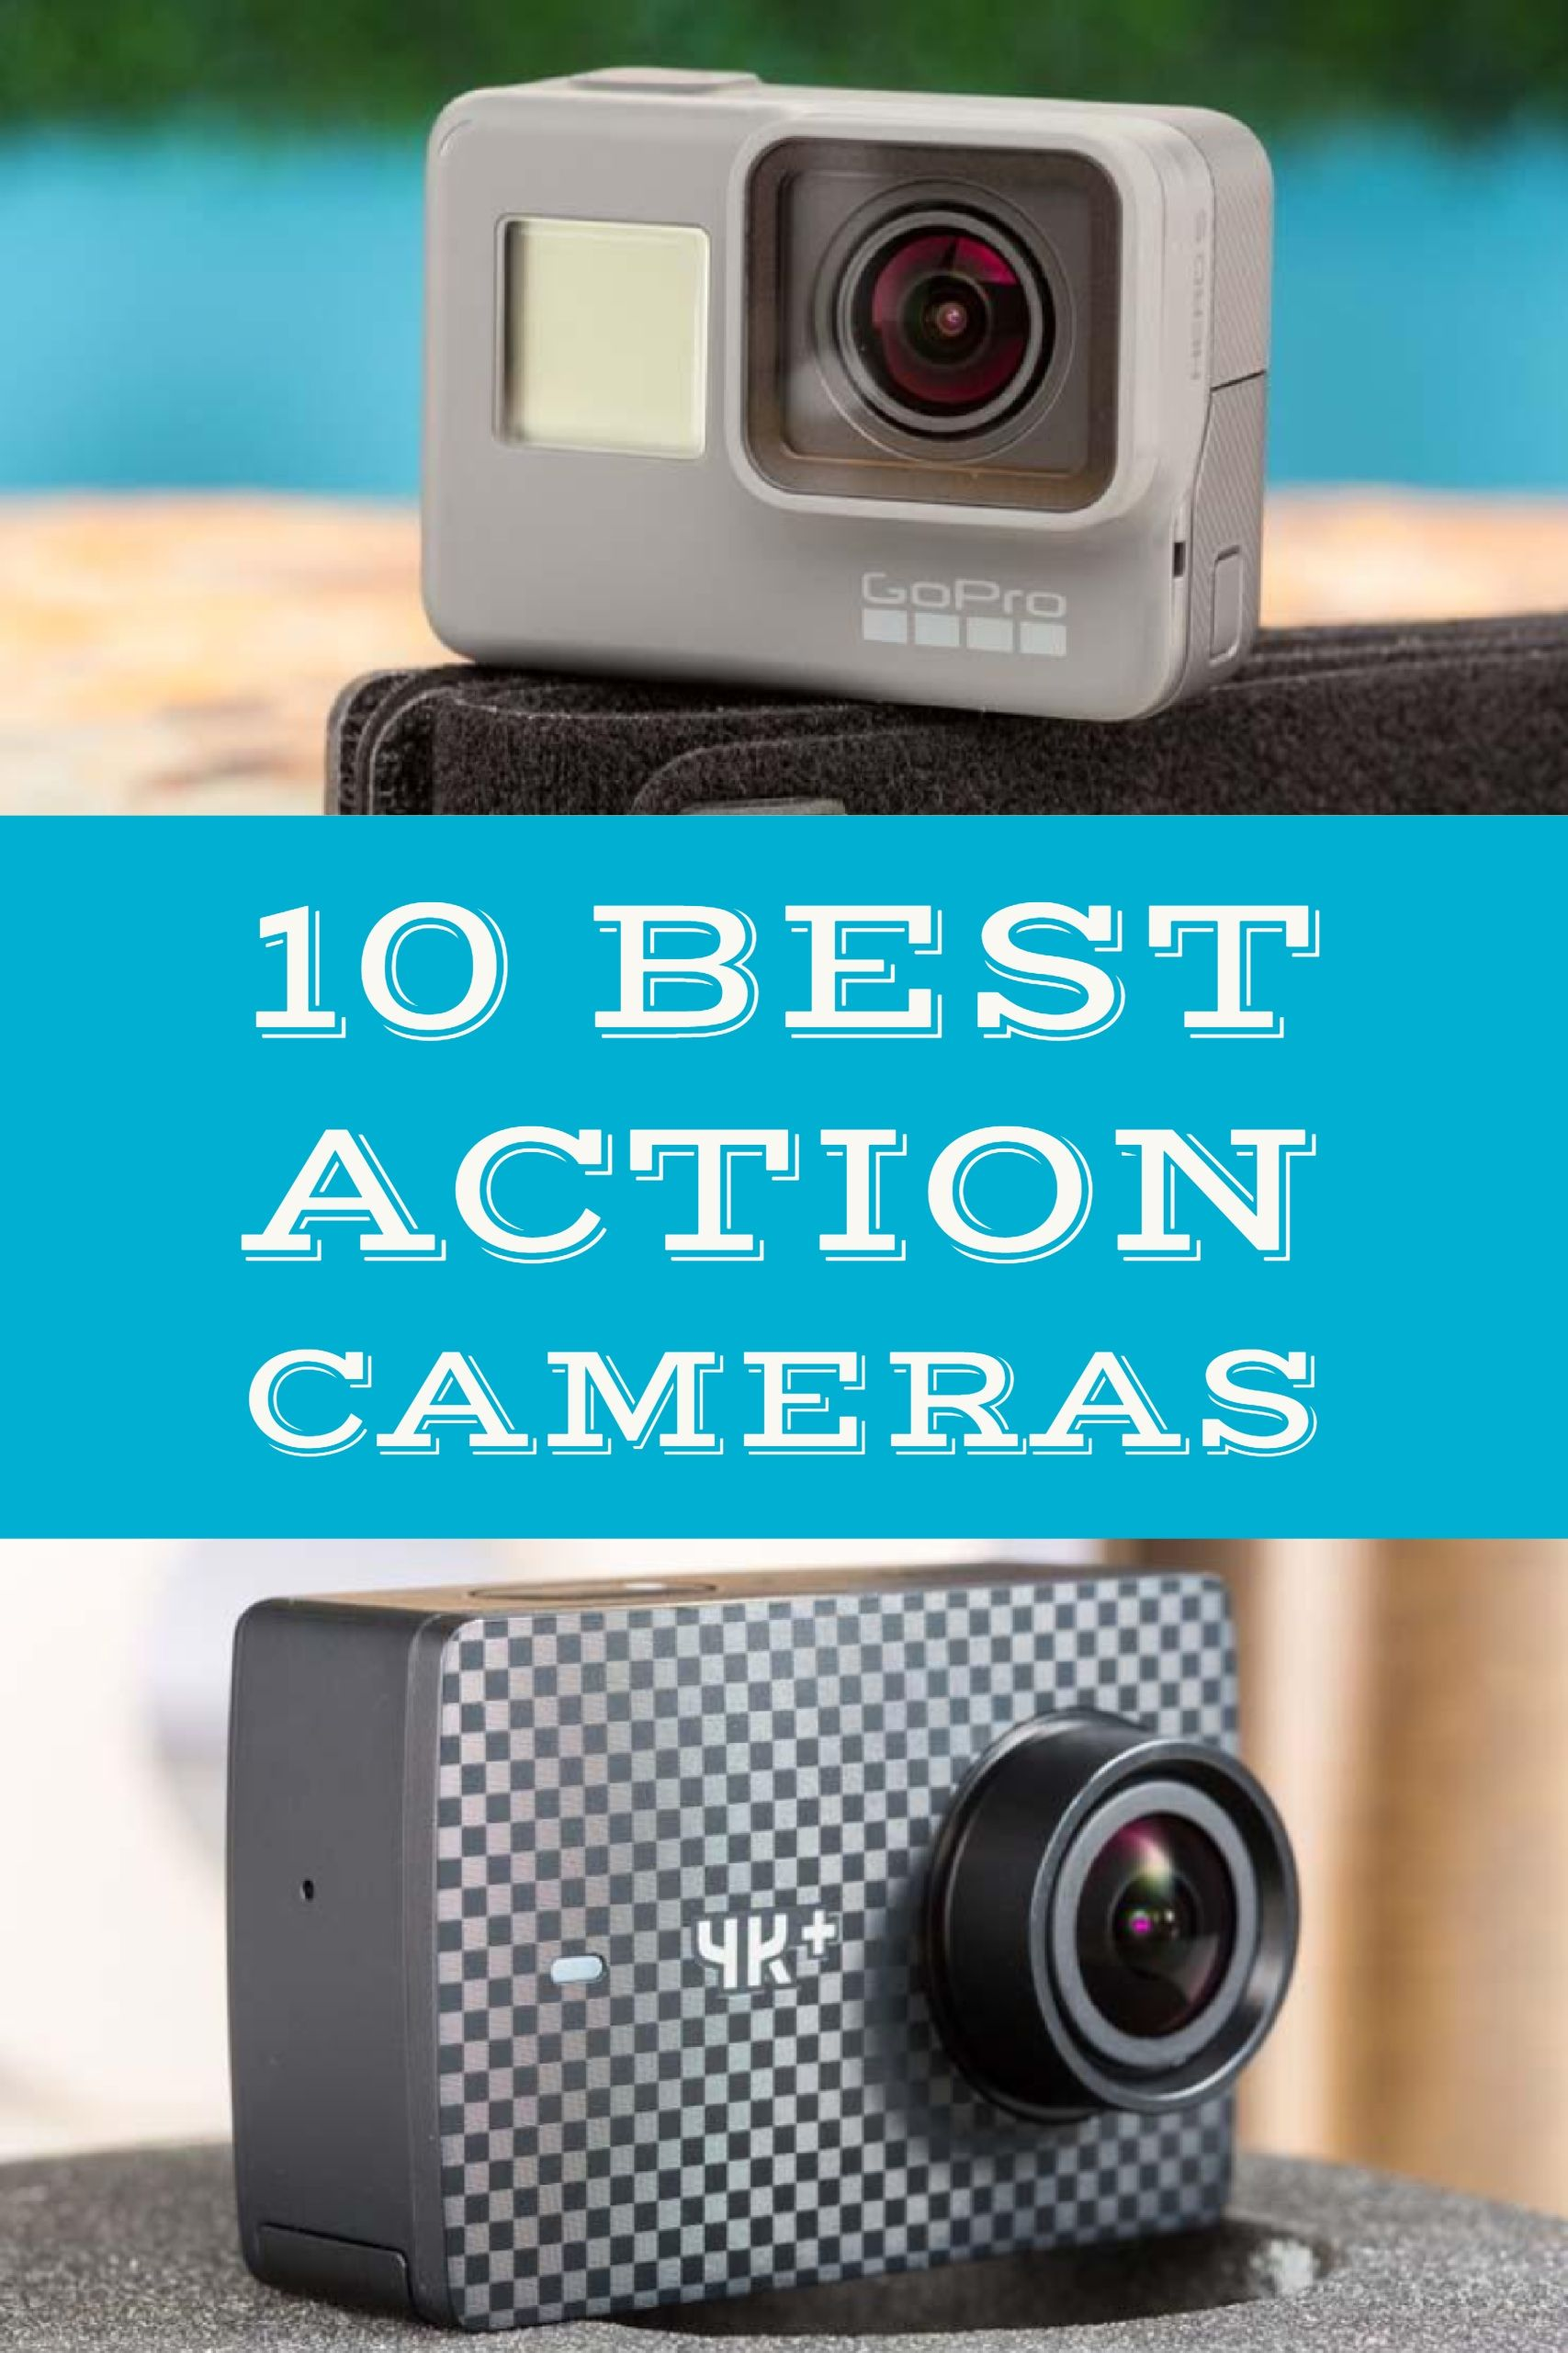 The Best Action Cameras And Camcorders For 2020 Action Camera